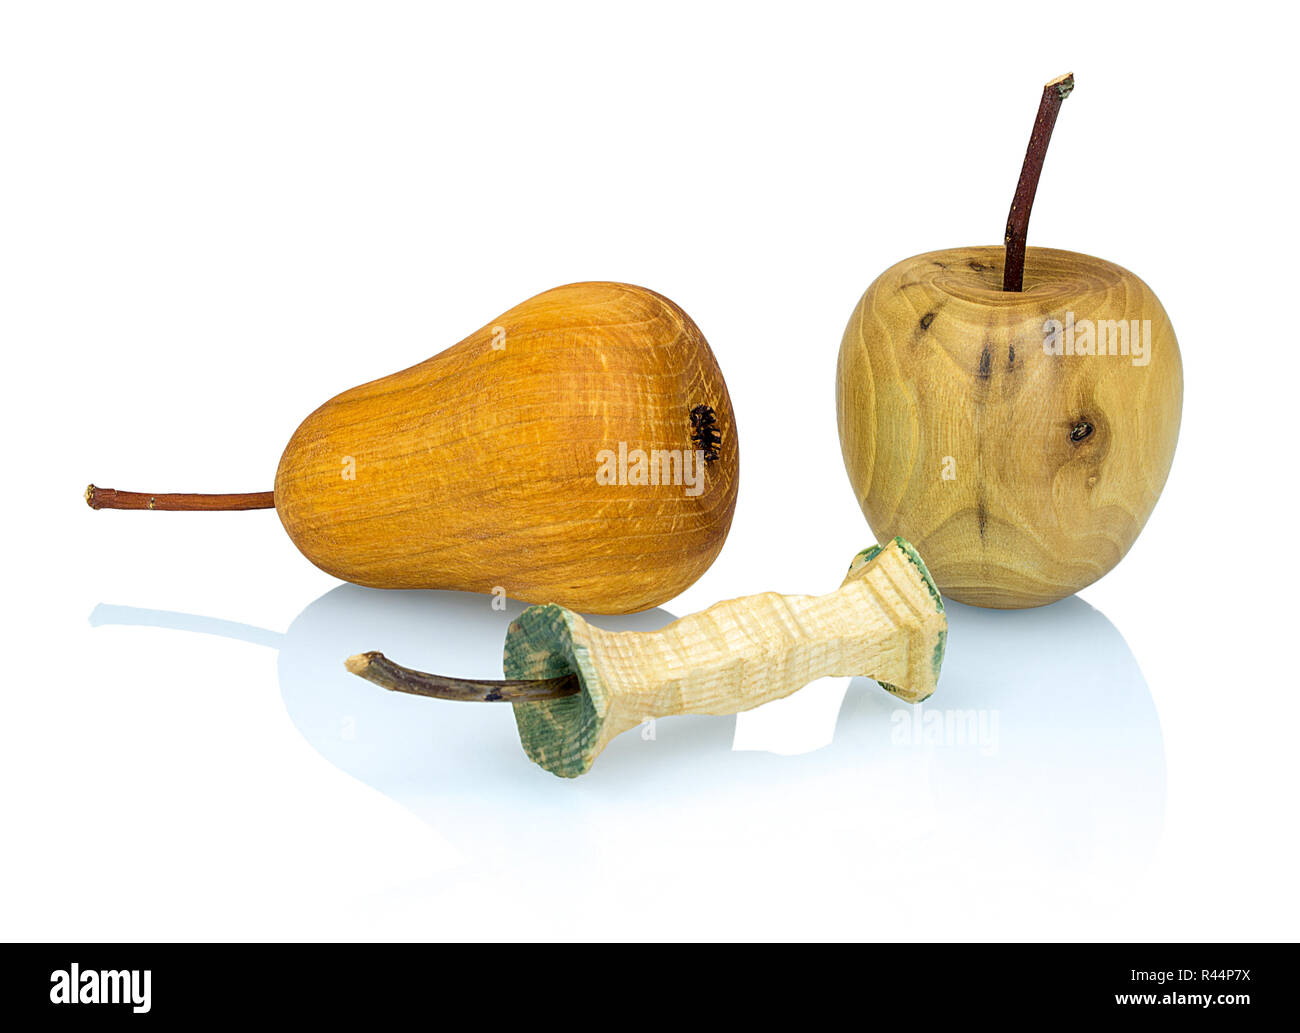 Wooden apple, apple stub and pear  made from a different types of wood isolated on white background with shadow reflection. Perfect arranged handcraft - Stock Image